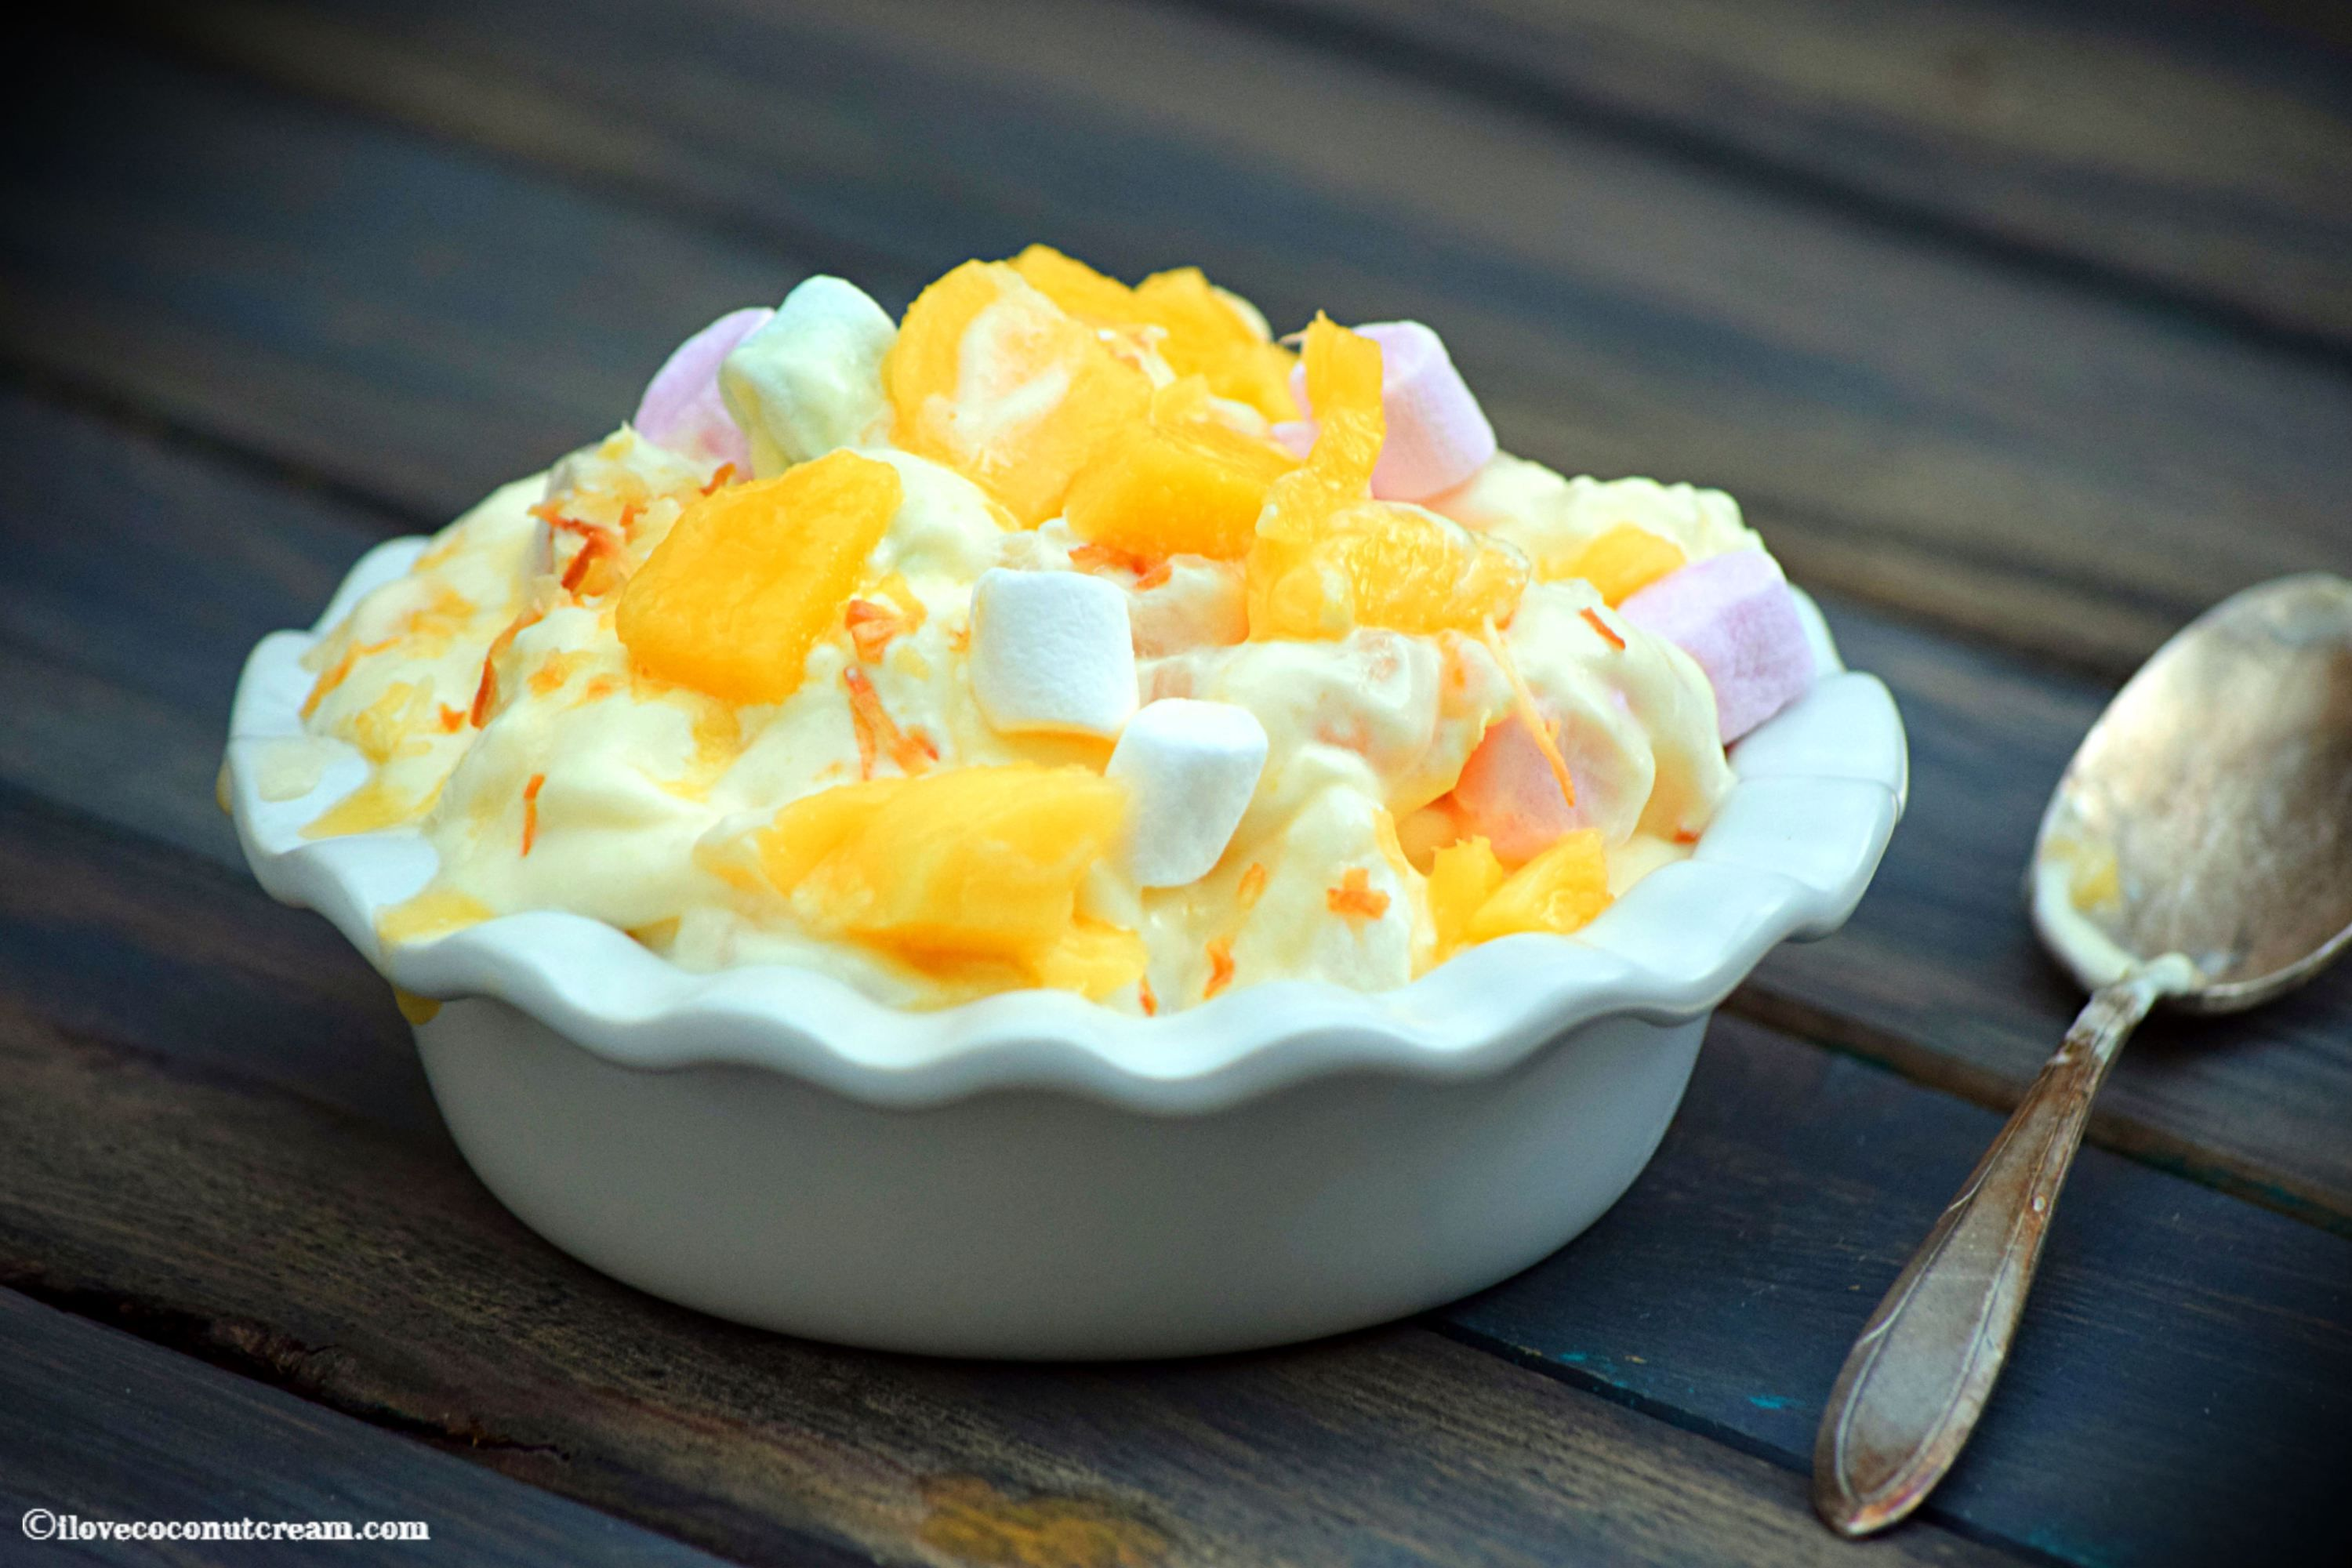 A Delicious Lychee Amp Mango Fruit Salad With Coconut Marshmallows And Creamy Yoghurt Ambrosia Salad Fruit Salad Recipes Mango Fruit